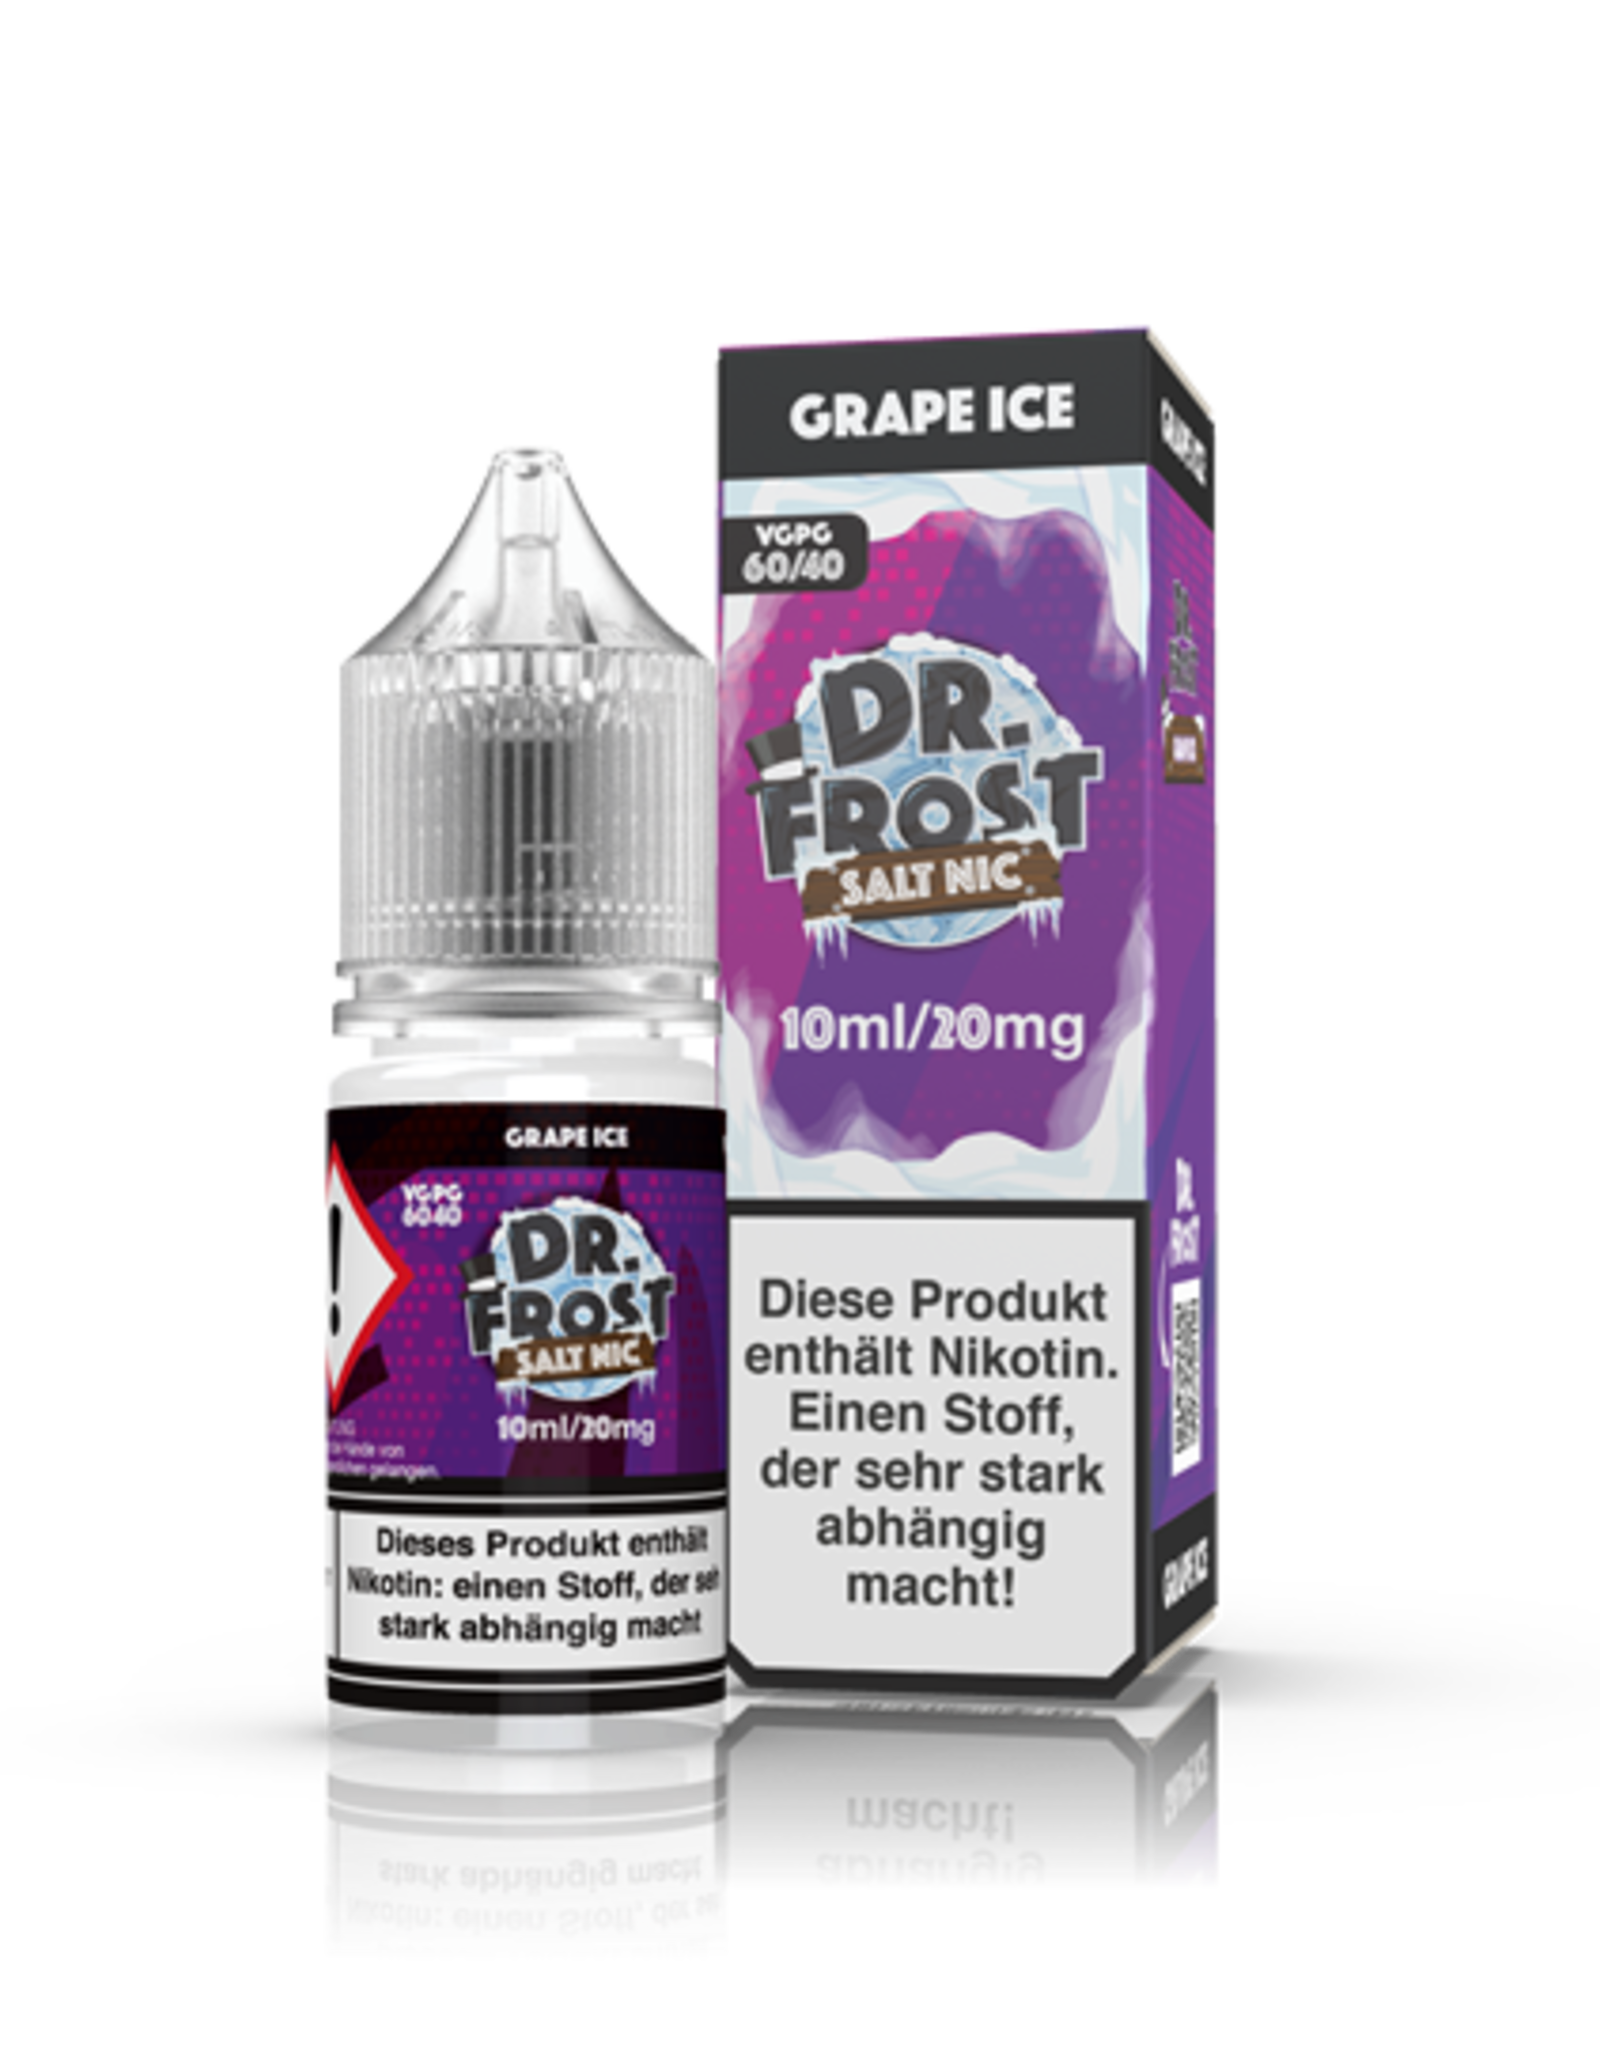 Dr. Frost Dr. Frost - Grape Ice 10ml 20mg